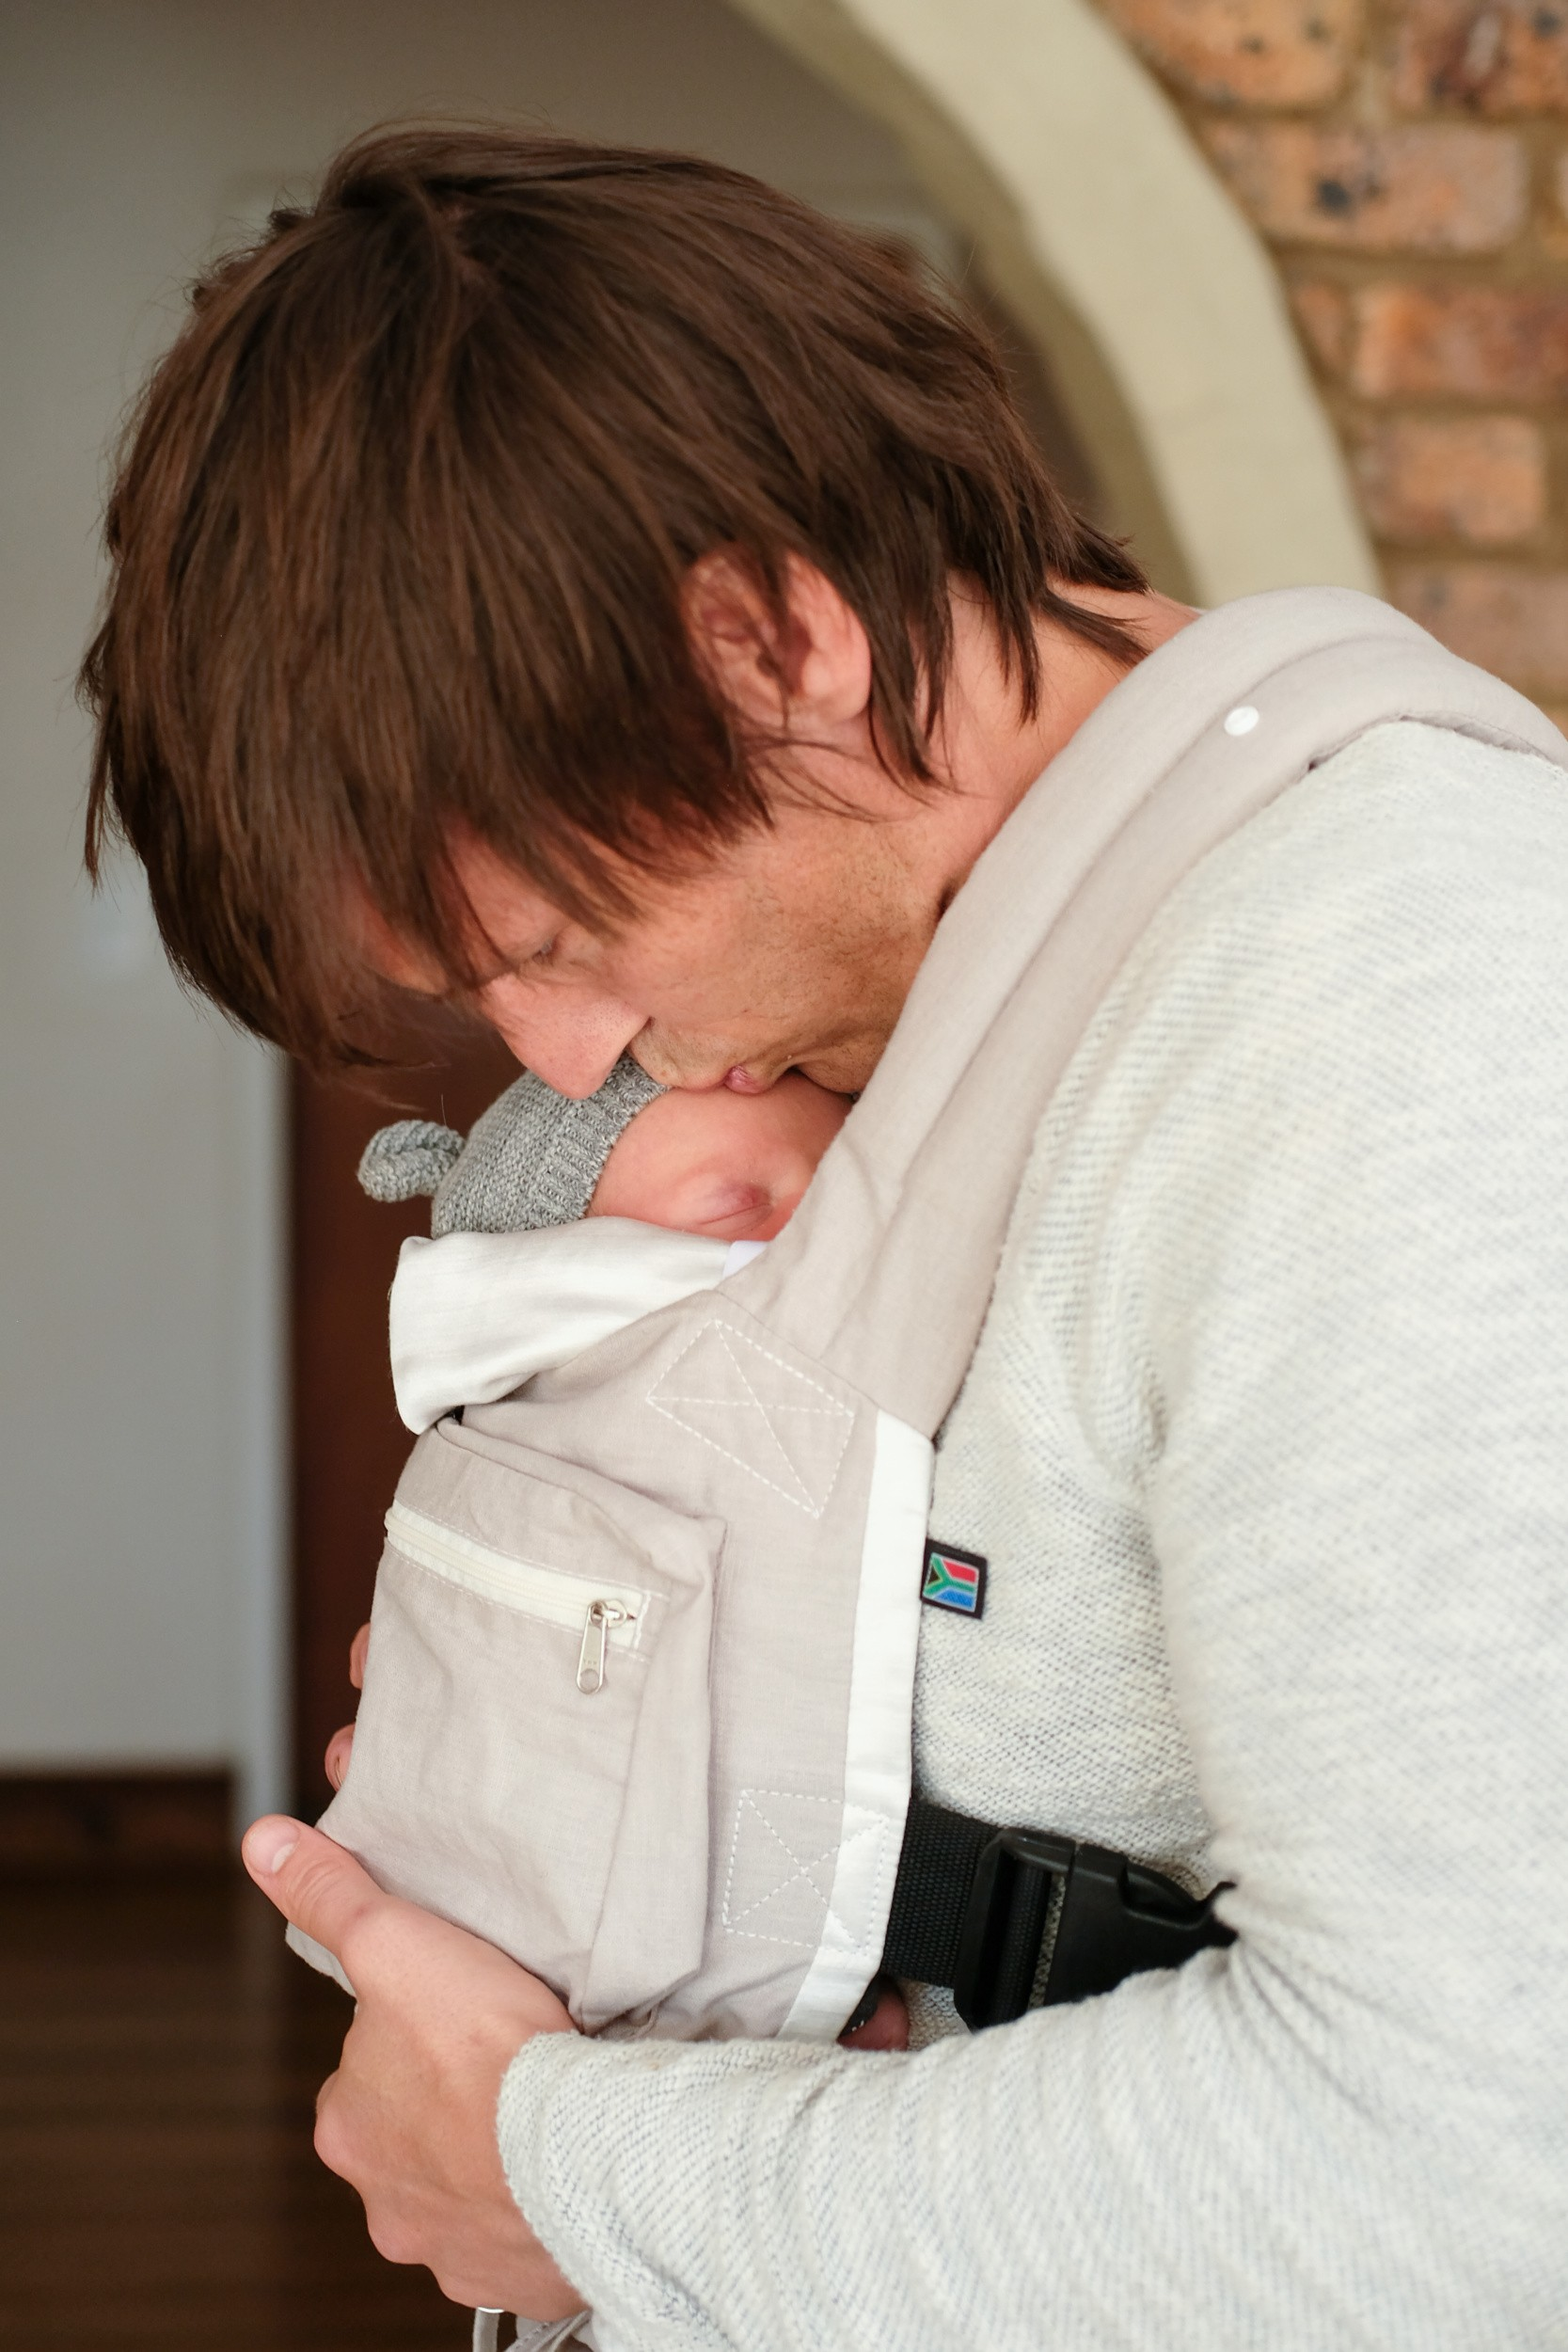 Ubuntu Baba baby carrier, Helping Mama recover post birth: The Ubuntu Baba Baby carrier